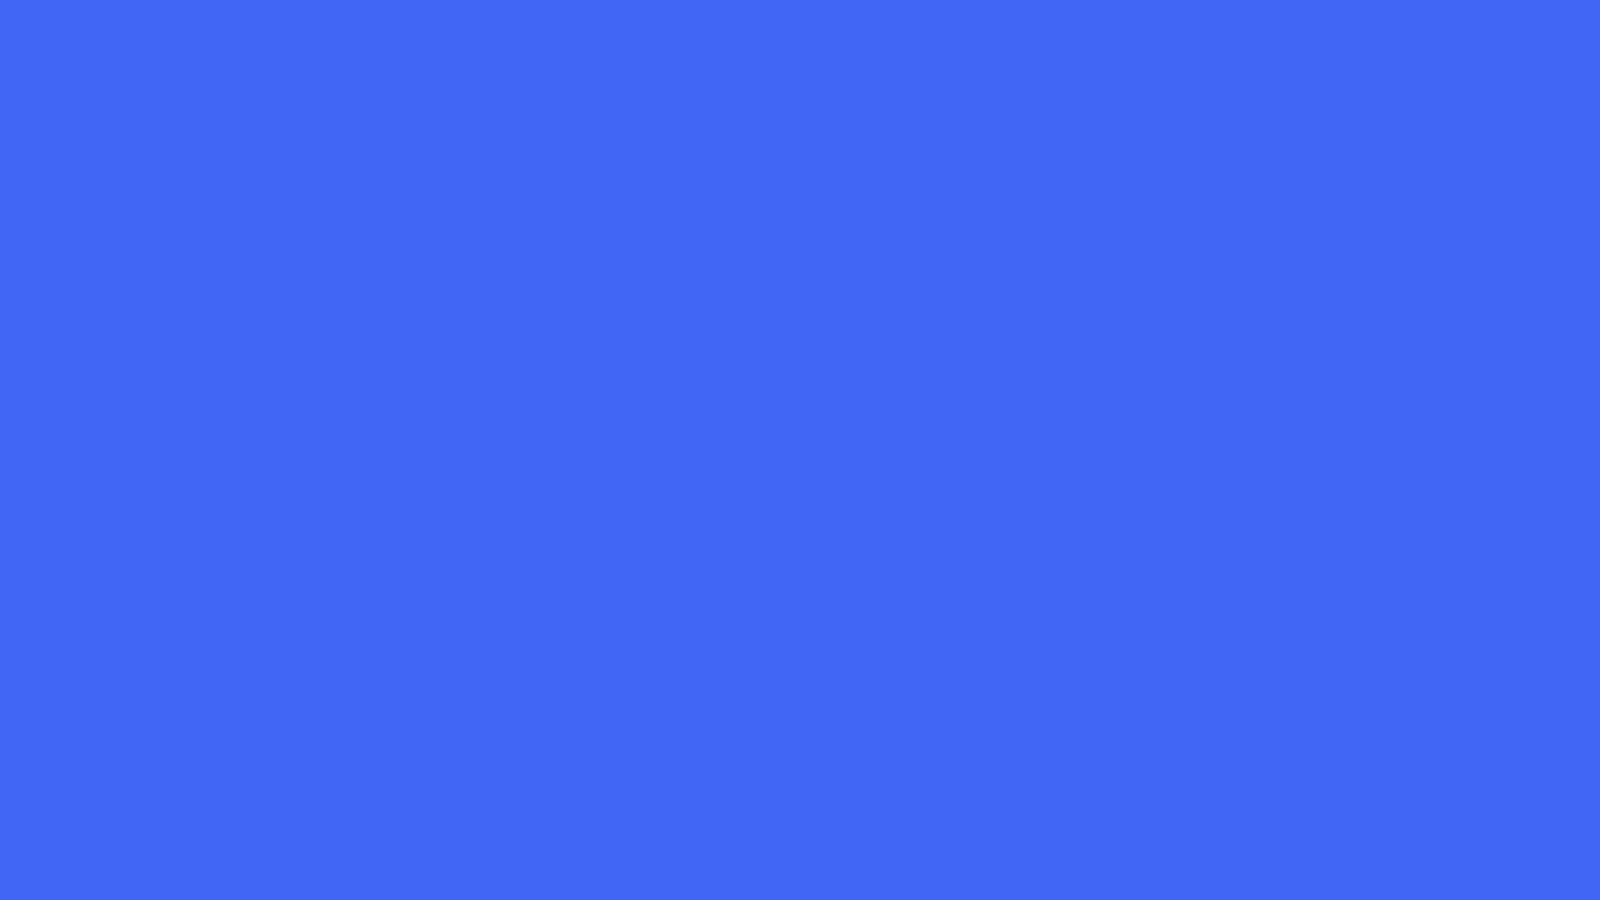 1600x900 Ultramarine Blue Solid Color Background